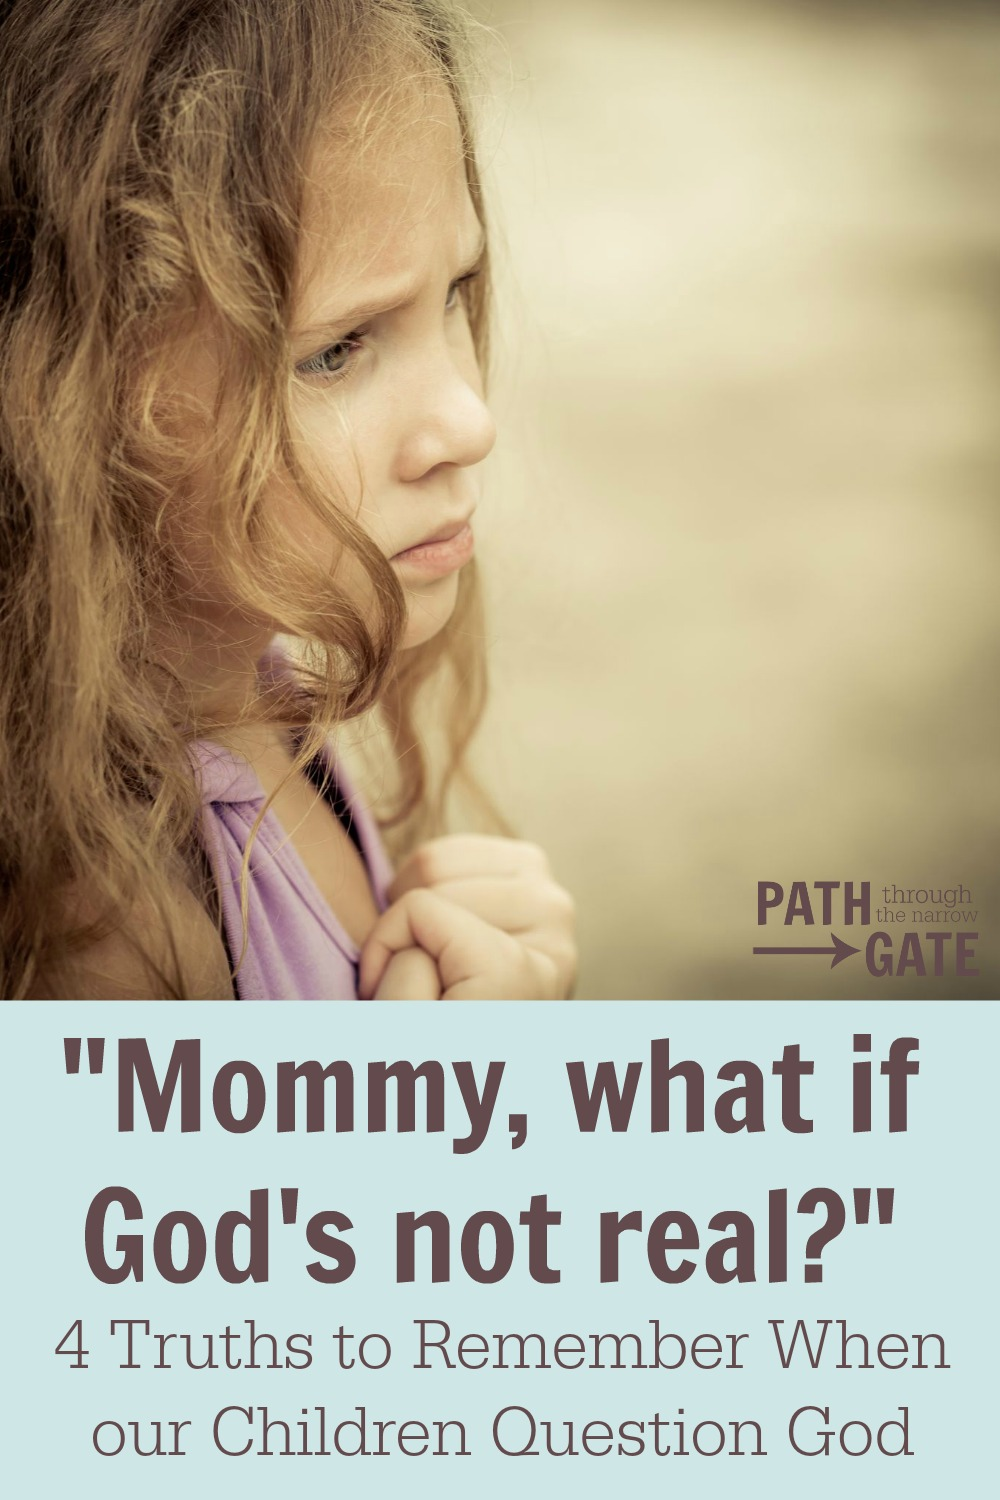 Have your children ever questioned God? It can be a terrifying experience for parents. This post offers real help.|Path Through the Narrow Gate.com